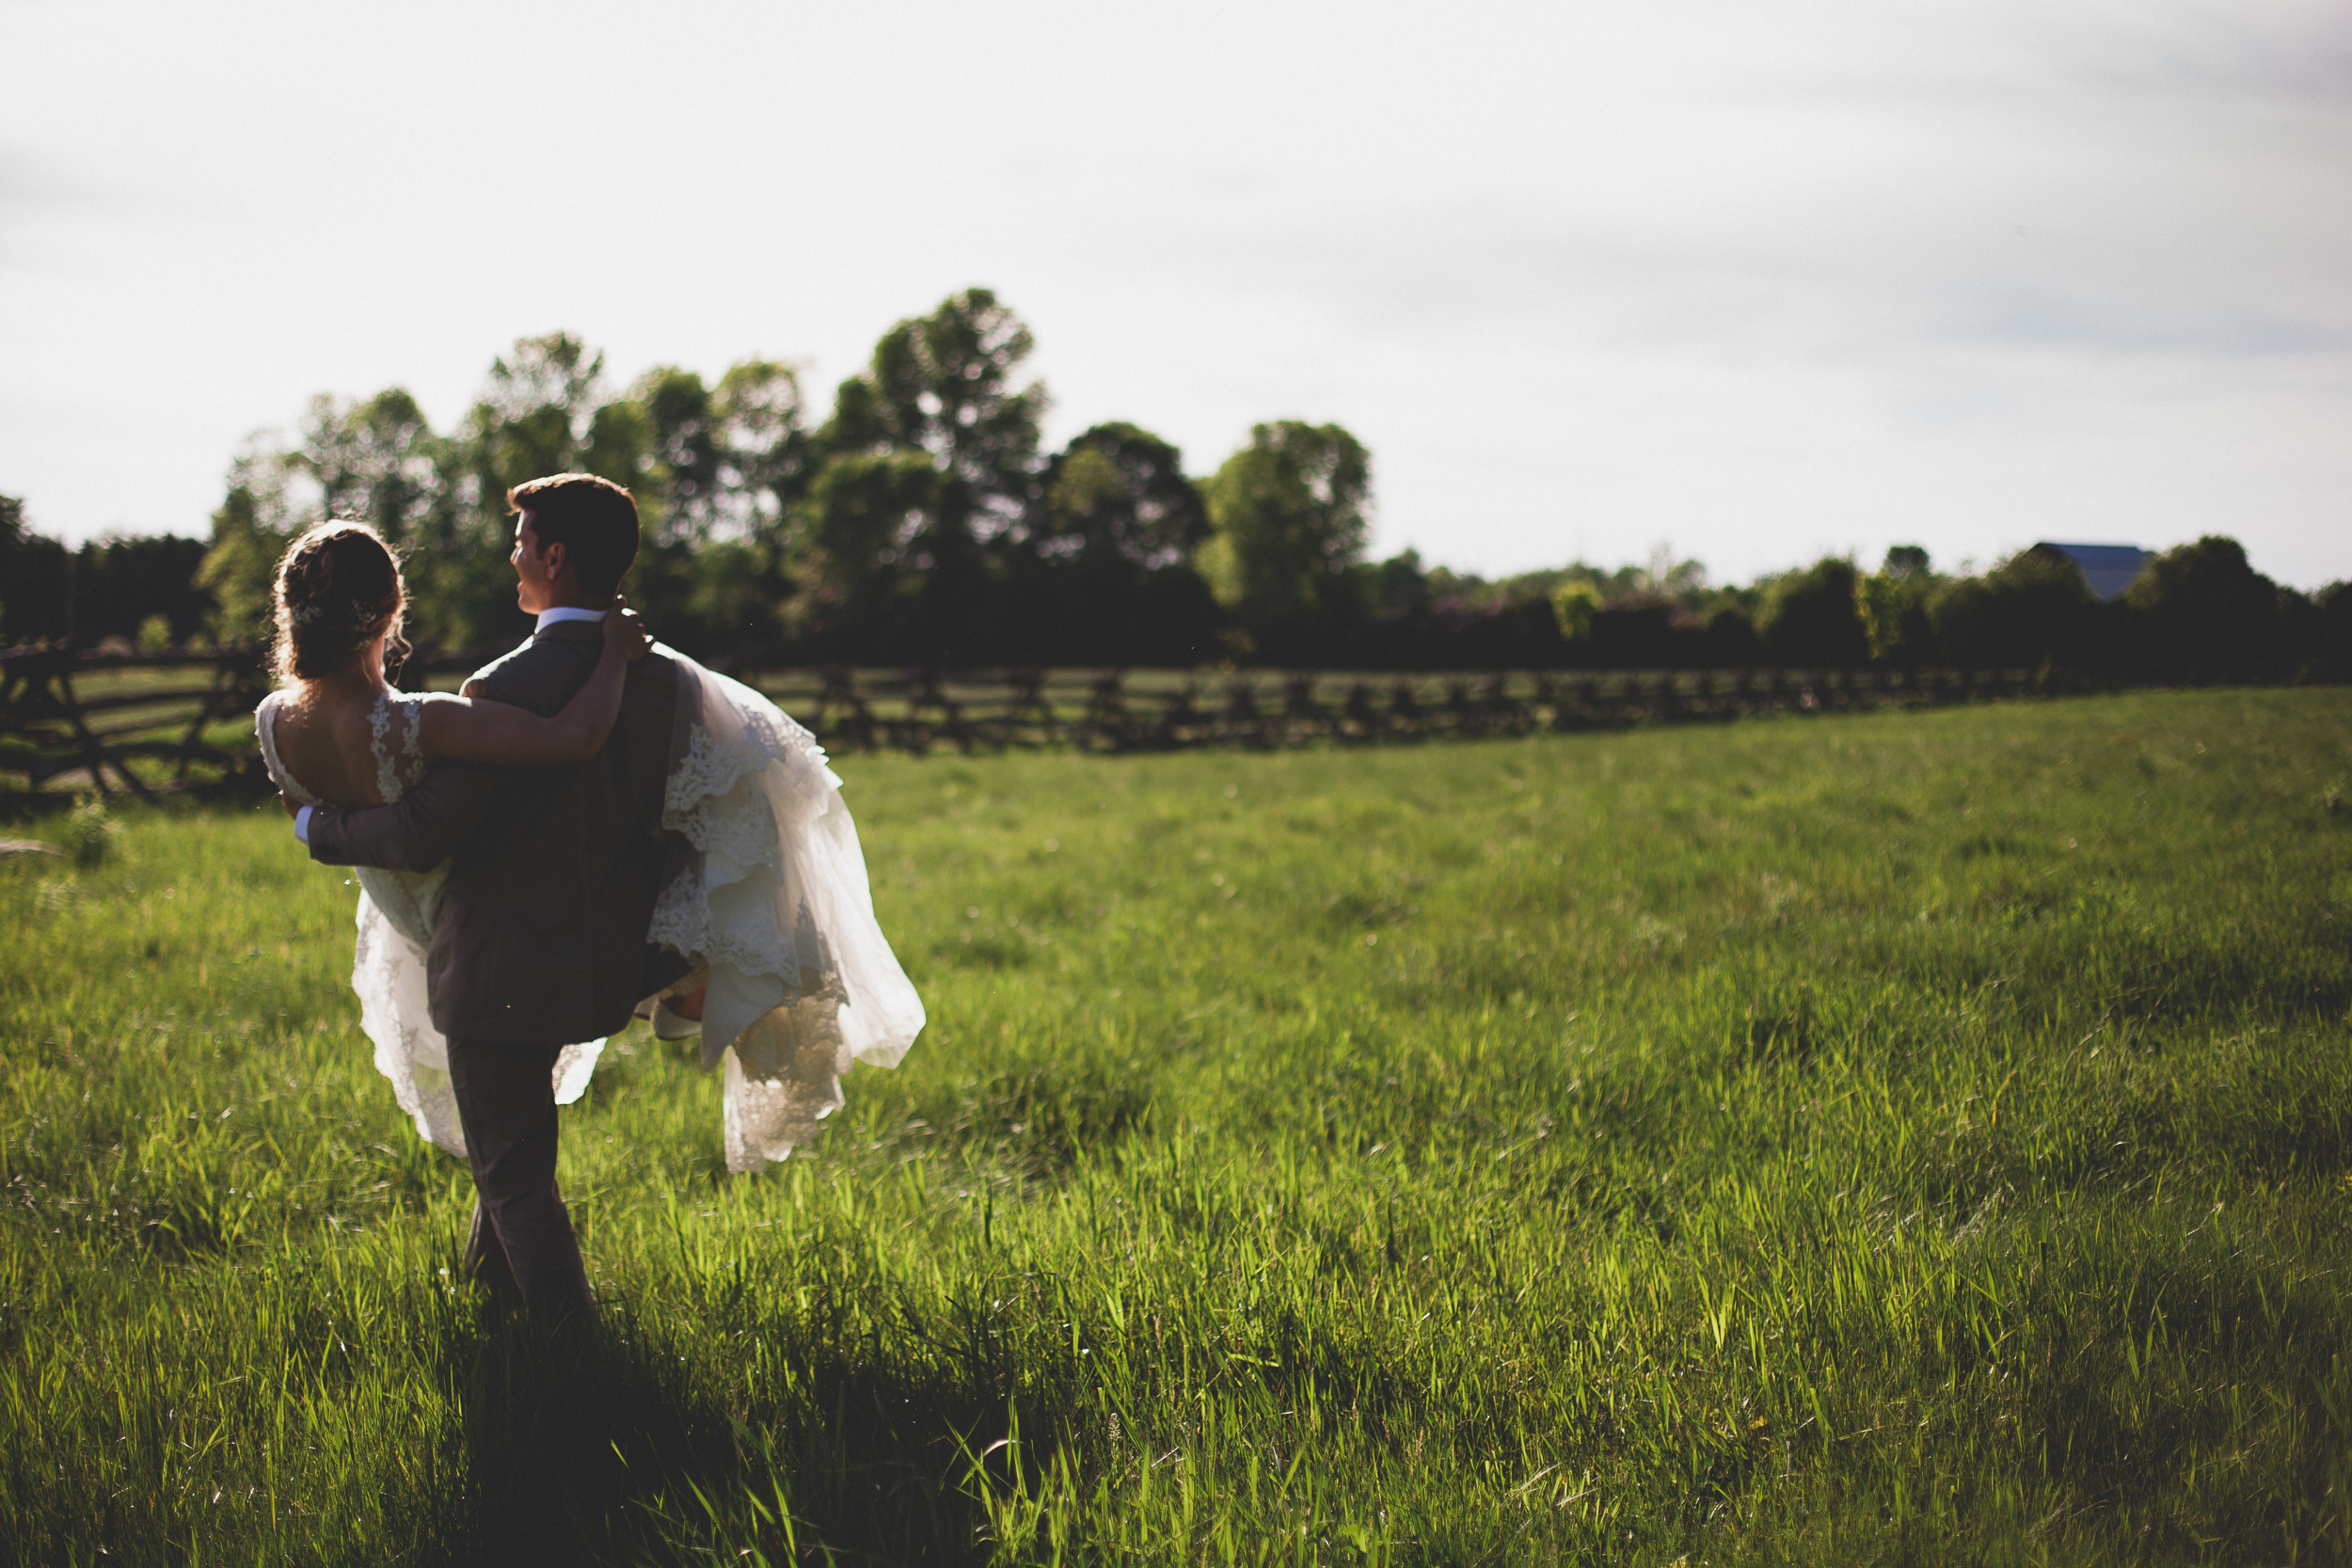 38-Groom_carrying_bride-through-field.jpg